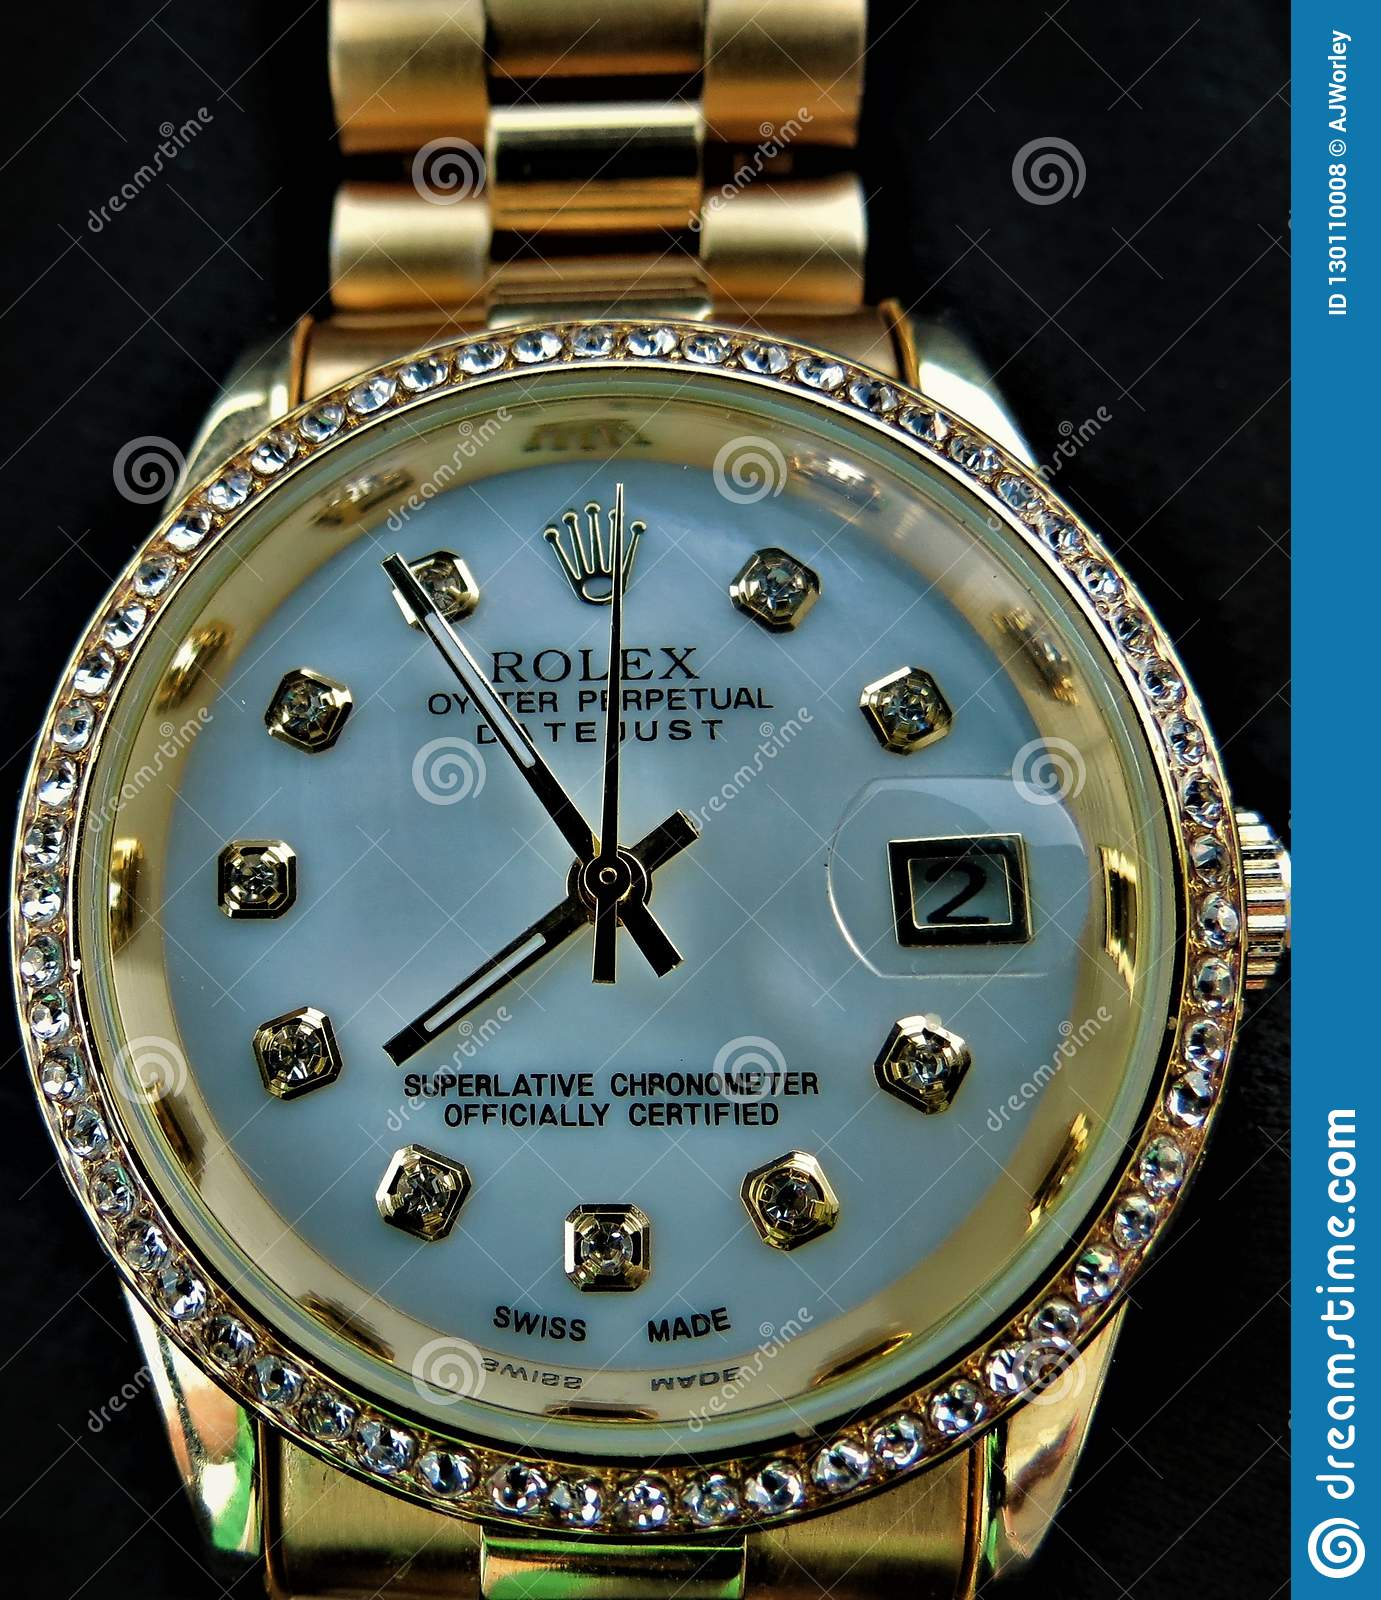 My Rolex Datejust Wrist Watch Editorial Stock Photo Image Of